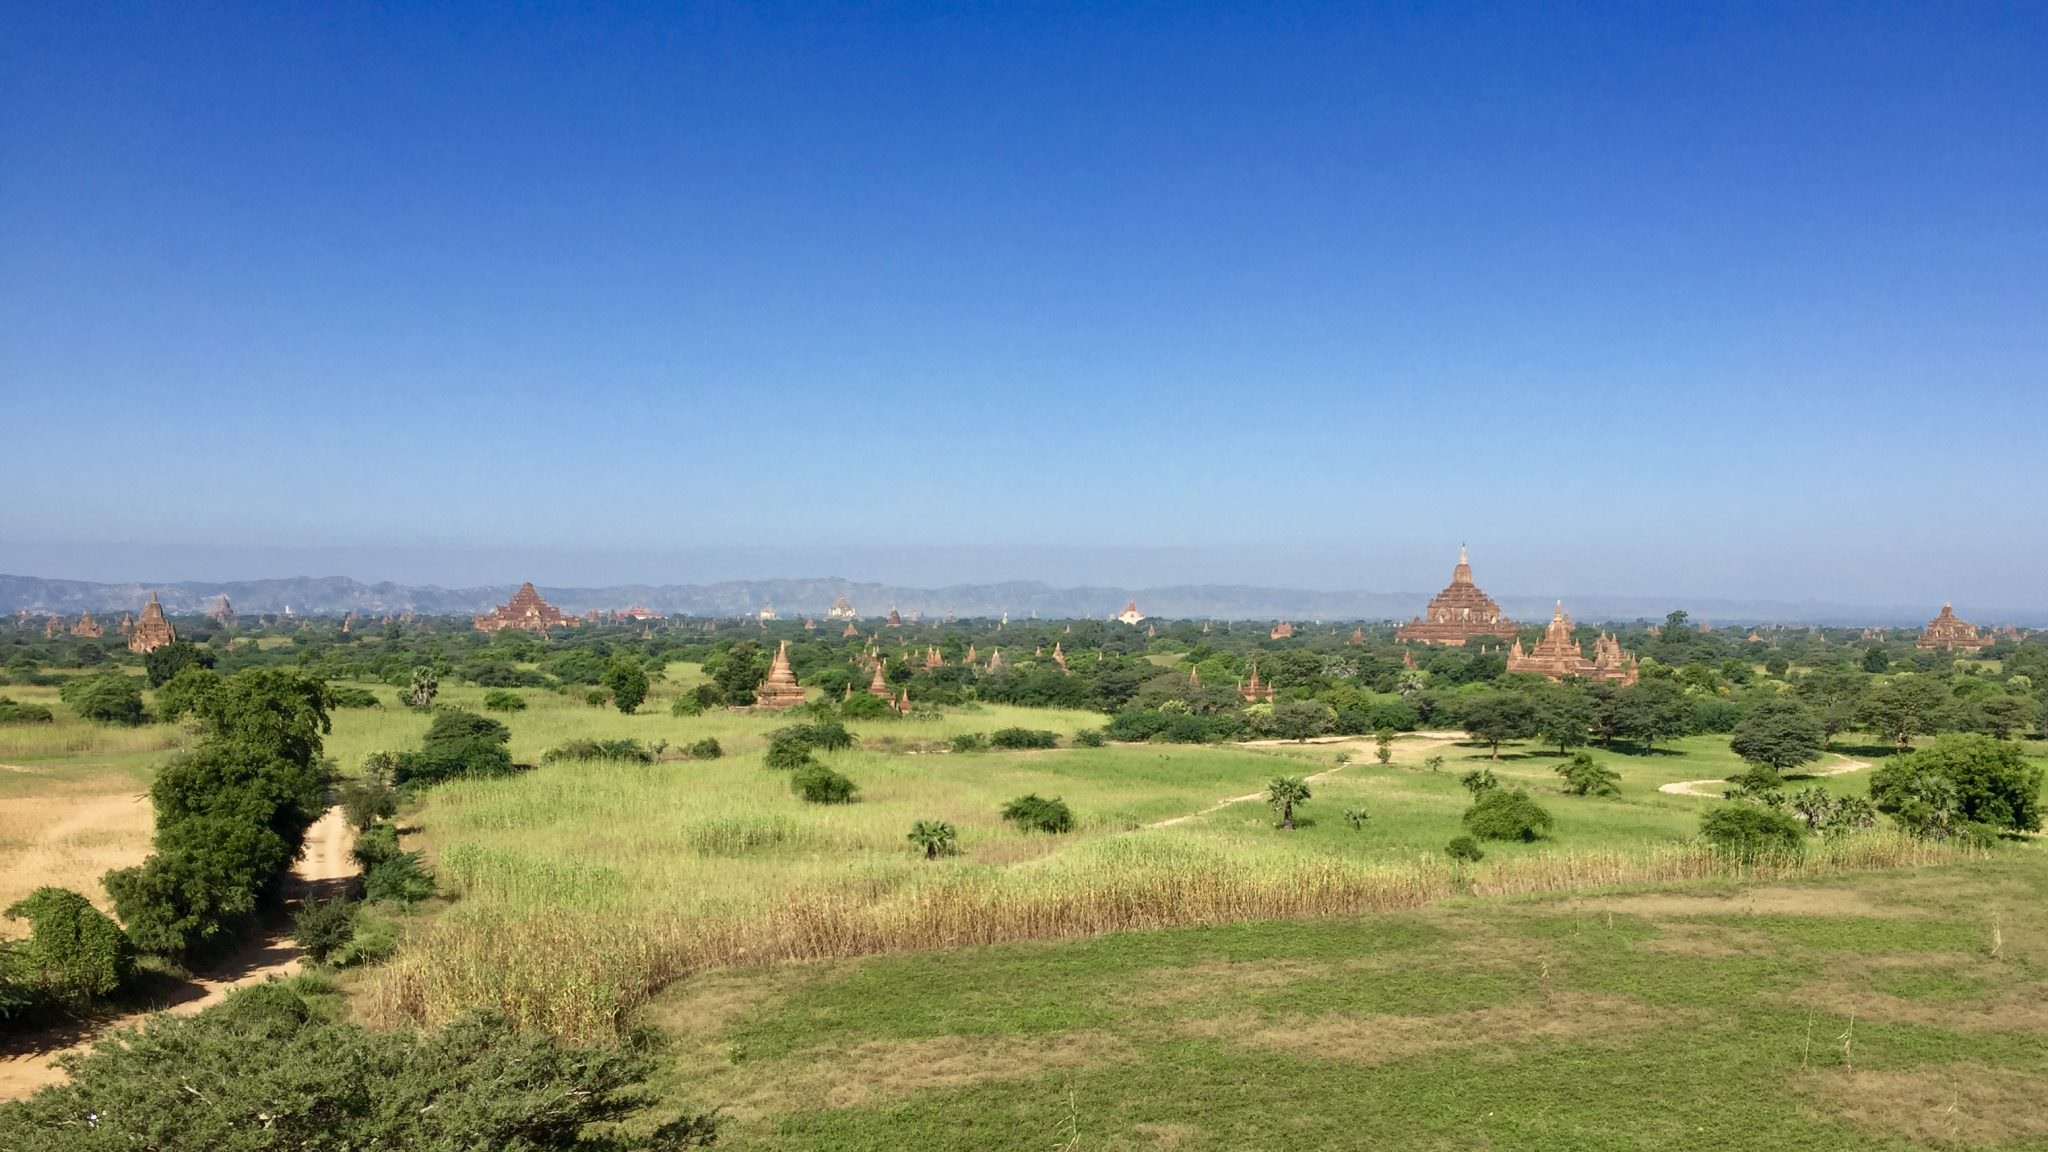 The ancient, iconic, breathtaking skyline of Bagan. © 2015 Gail Jessen